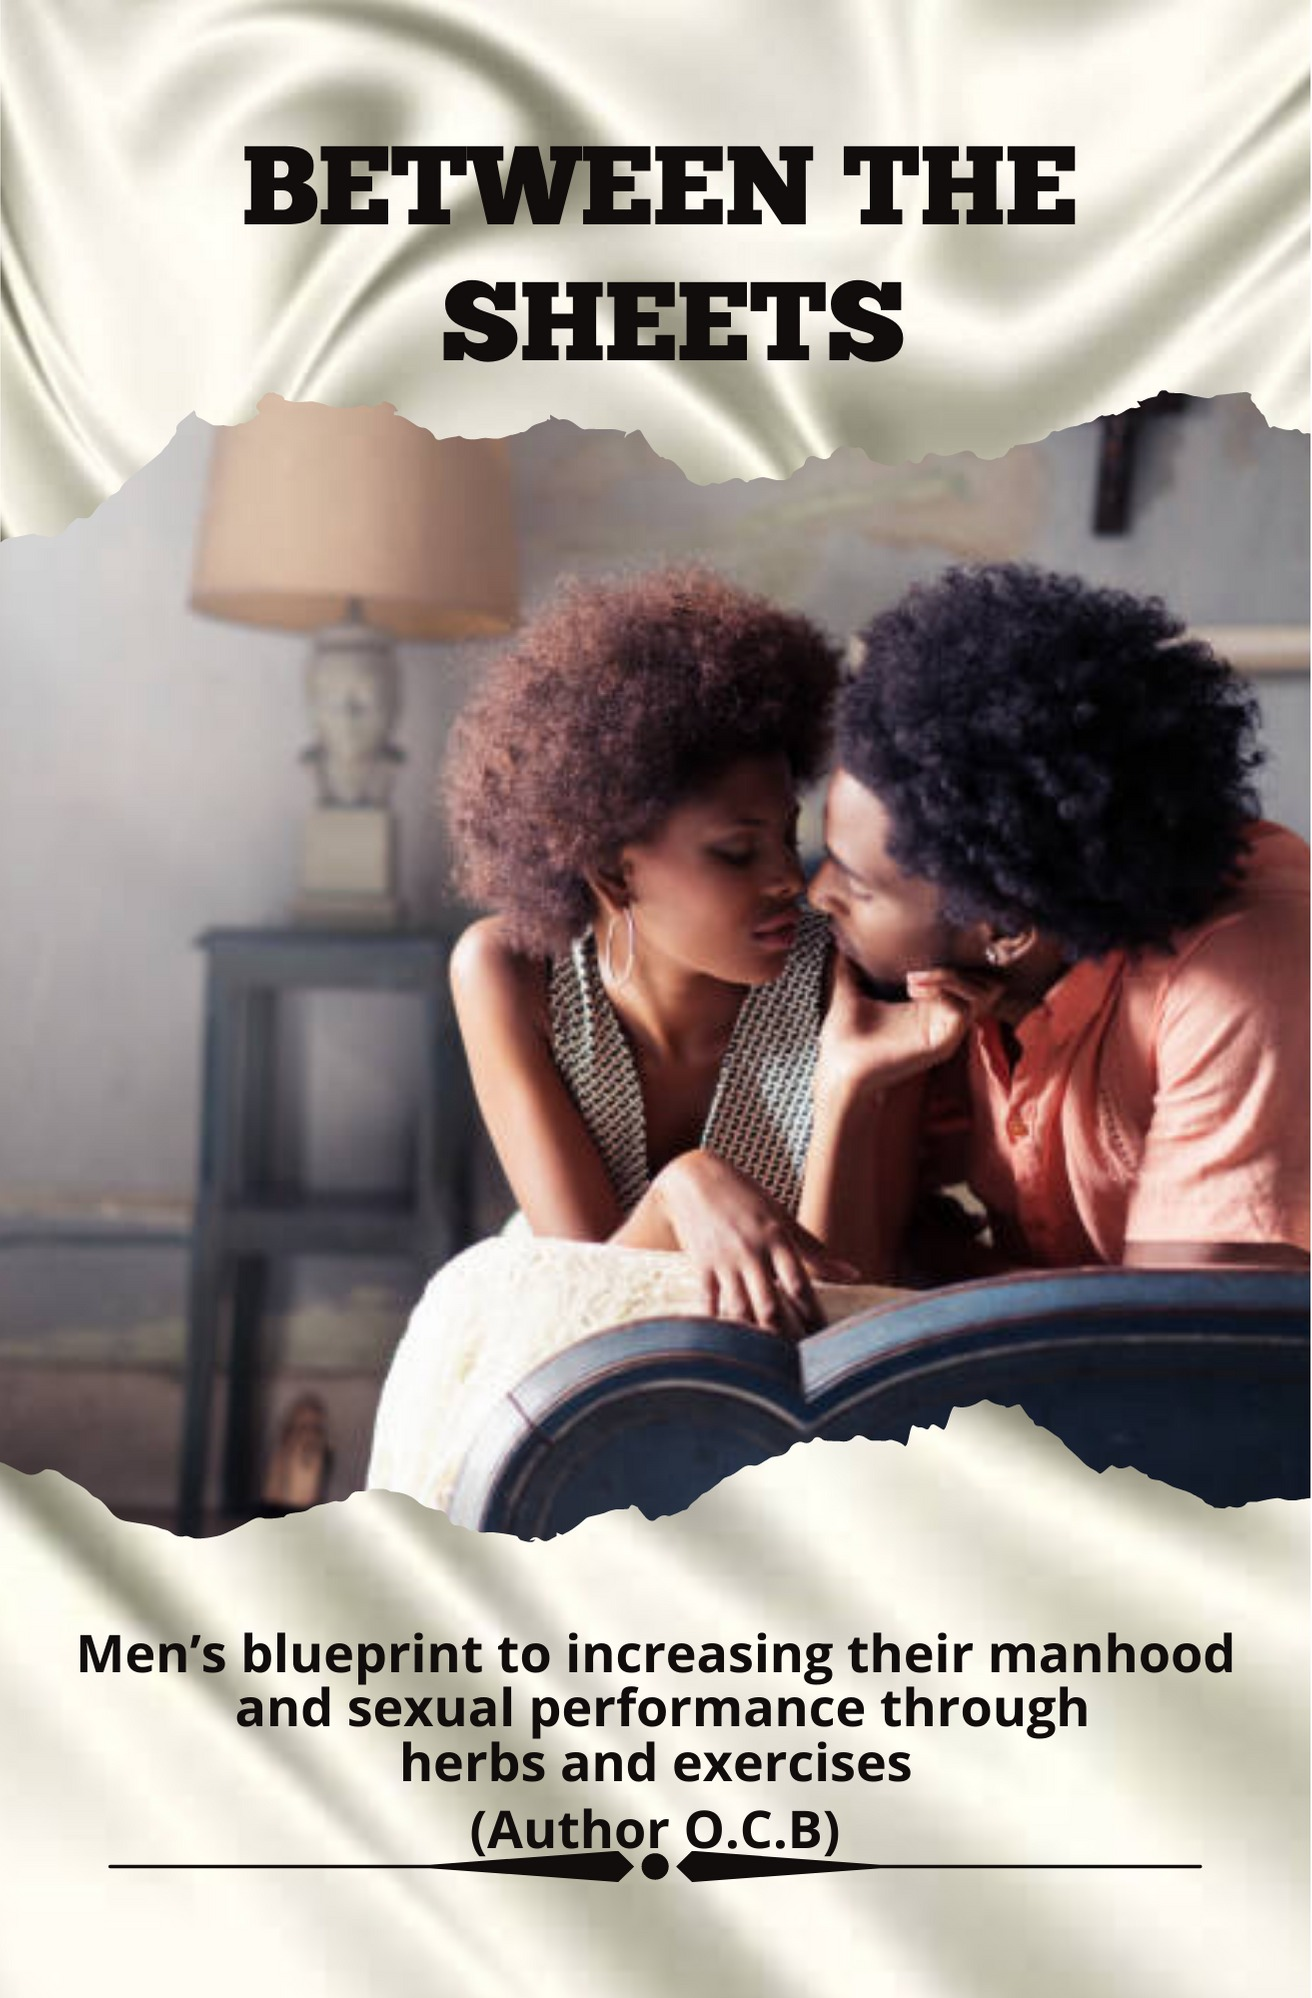 BETWEEN THE SHEETS  Men's blueprint to increase their manhood and